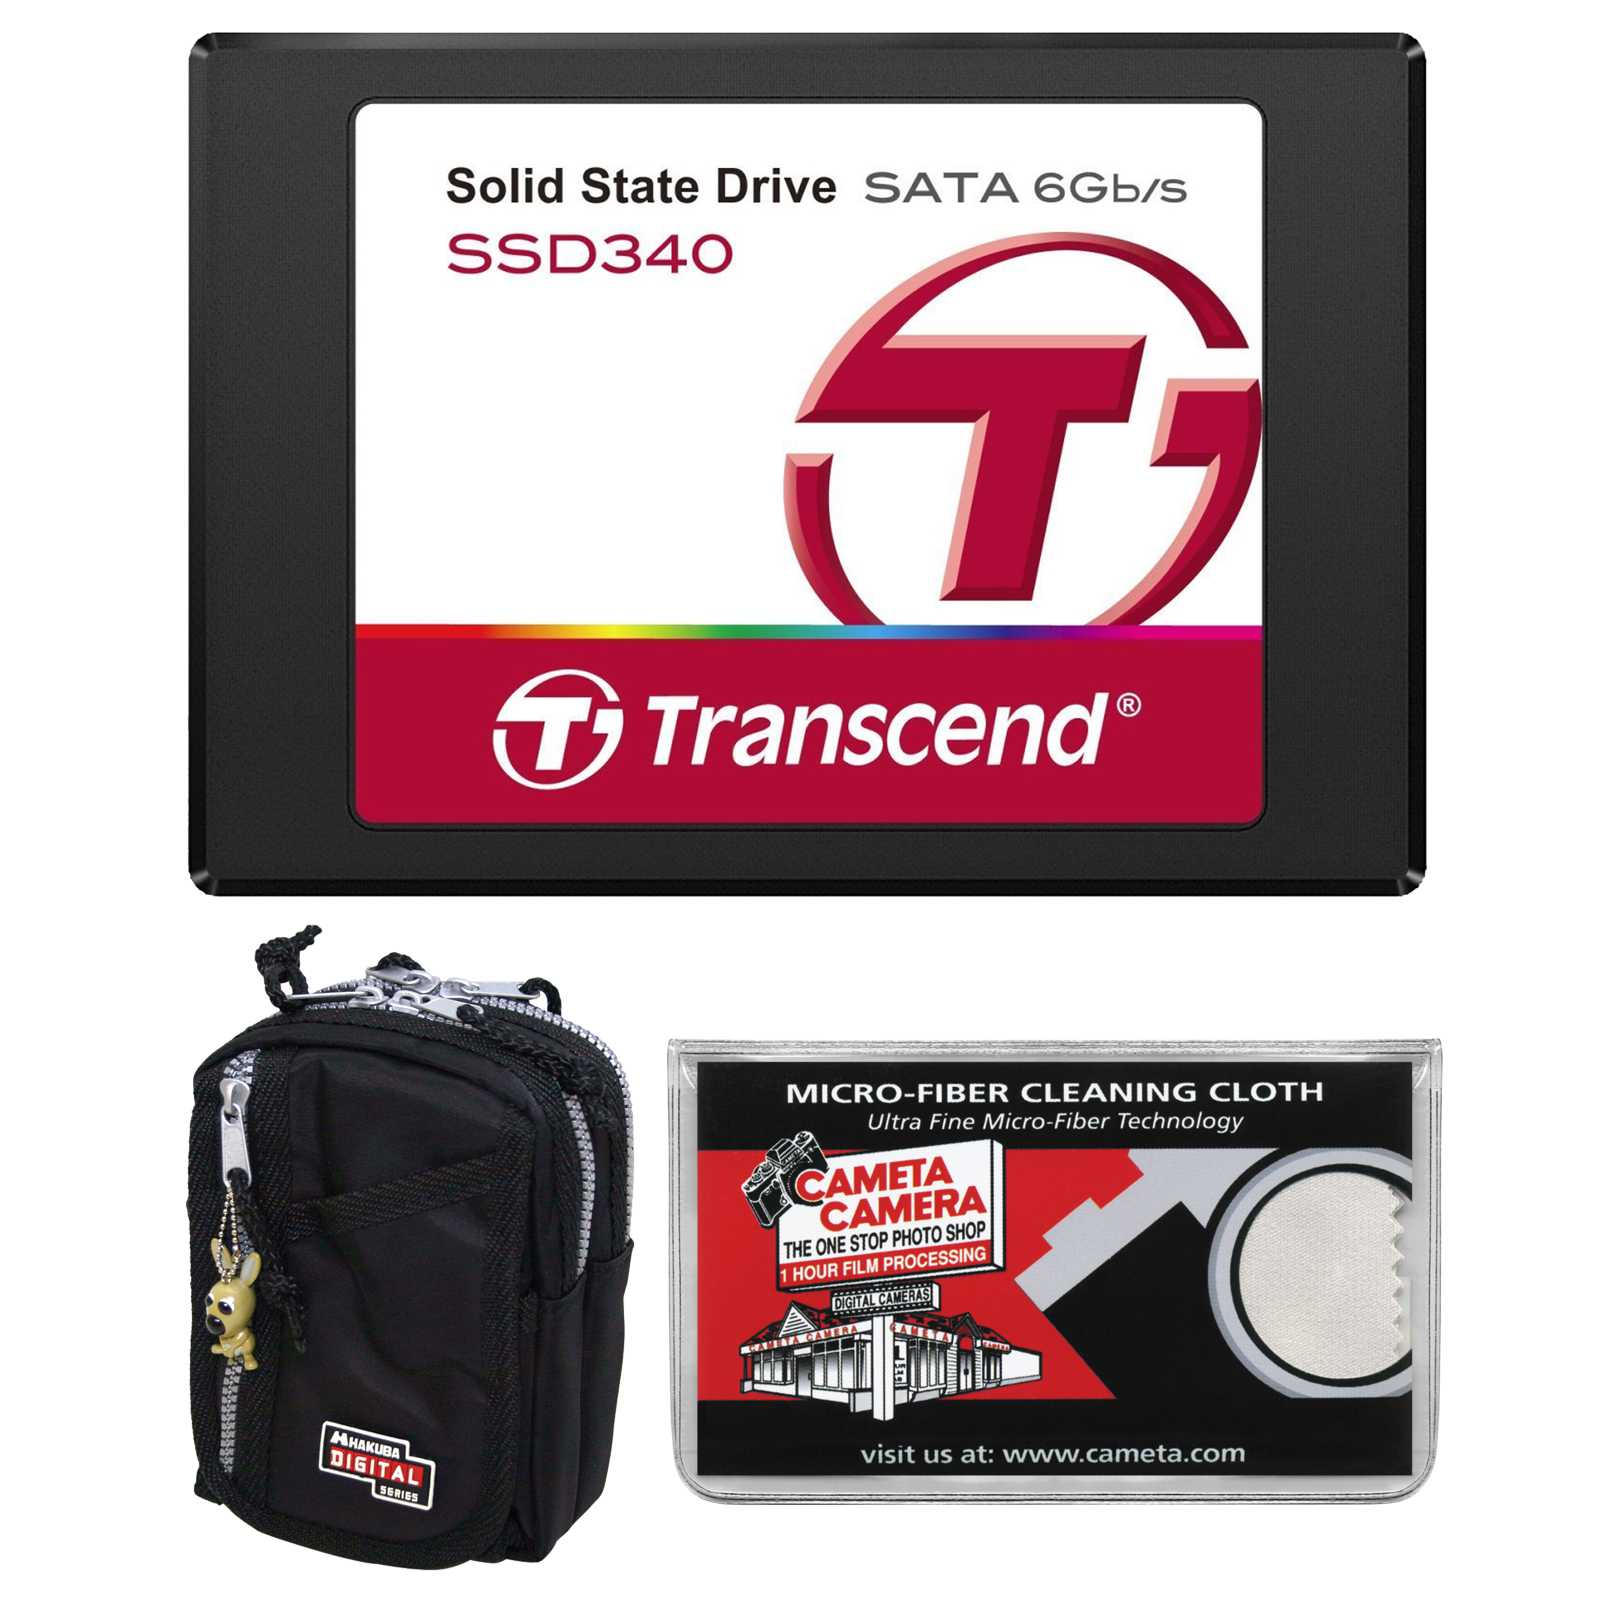 "Transcend 256GB SSD340 2.5"" Portable Solid State Hard Drive with Case + Cleaning Cloth"